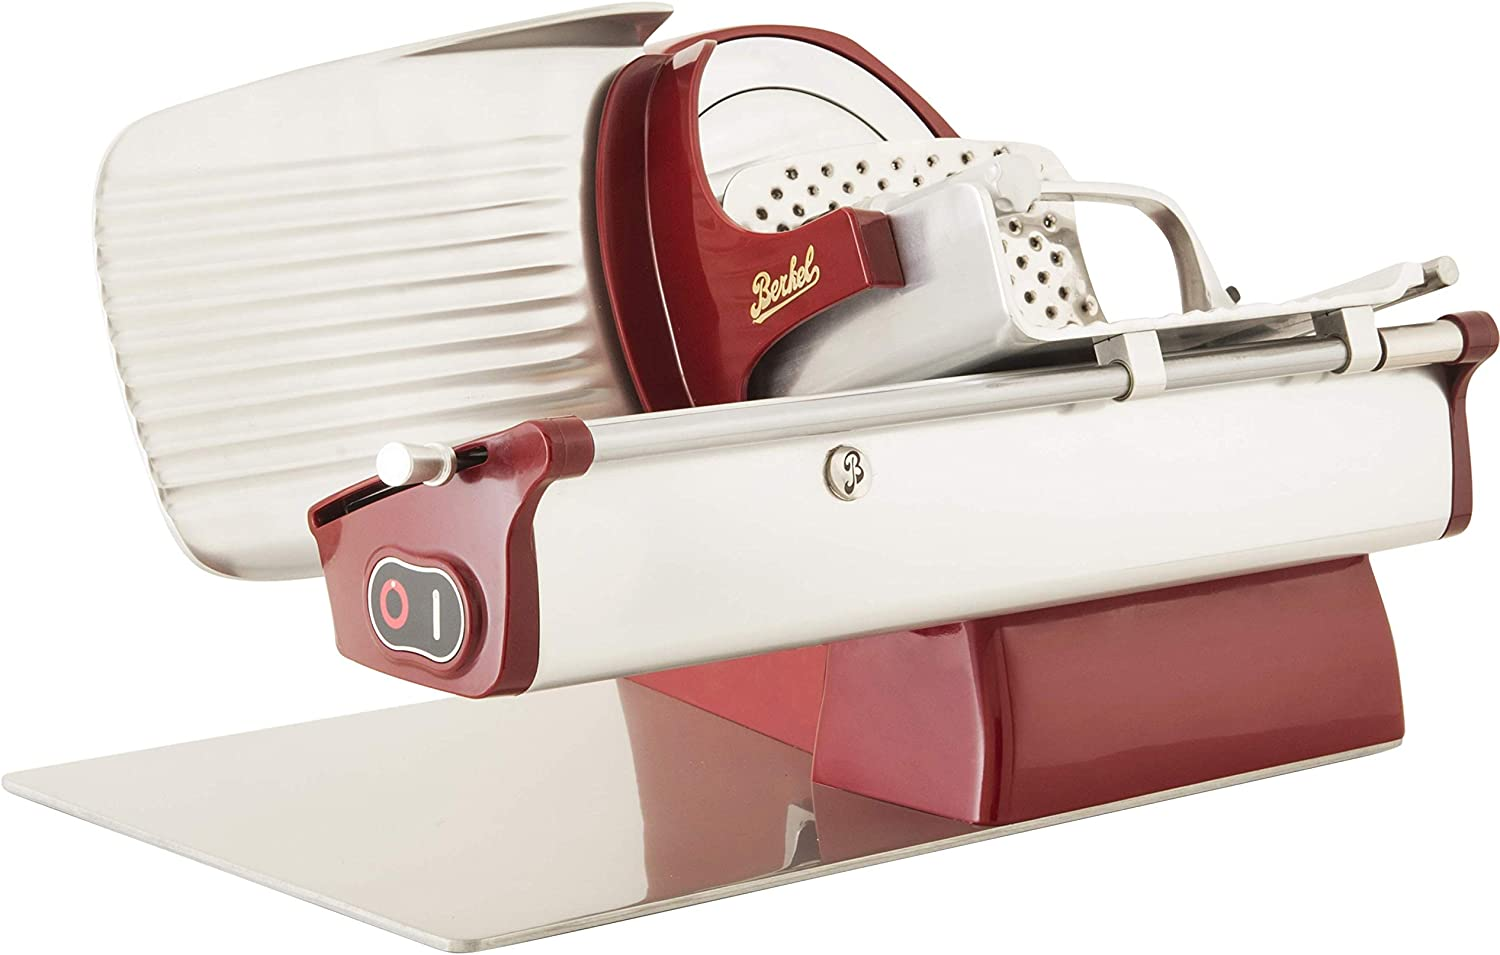 Berkel Home Line 200 Food Slicer/Red/8